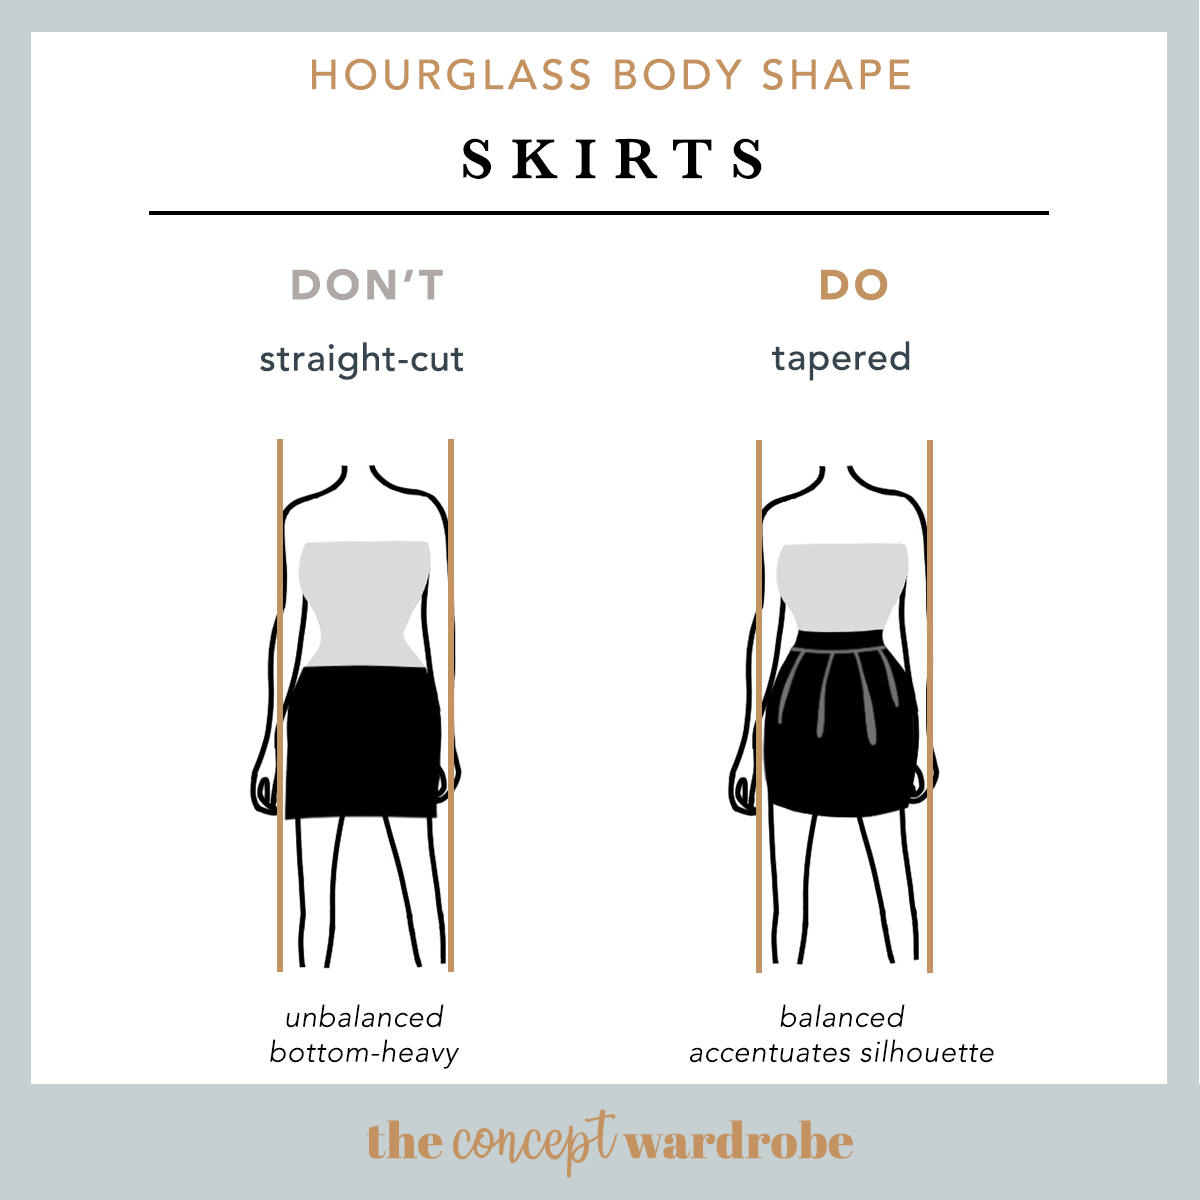 Hourglass Body Shape Skirts Do's and Don'ts - the concept wardrobe